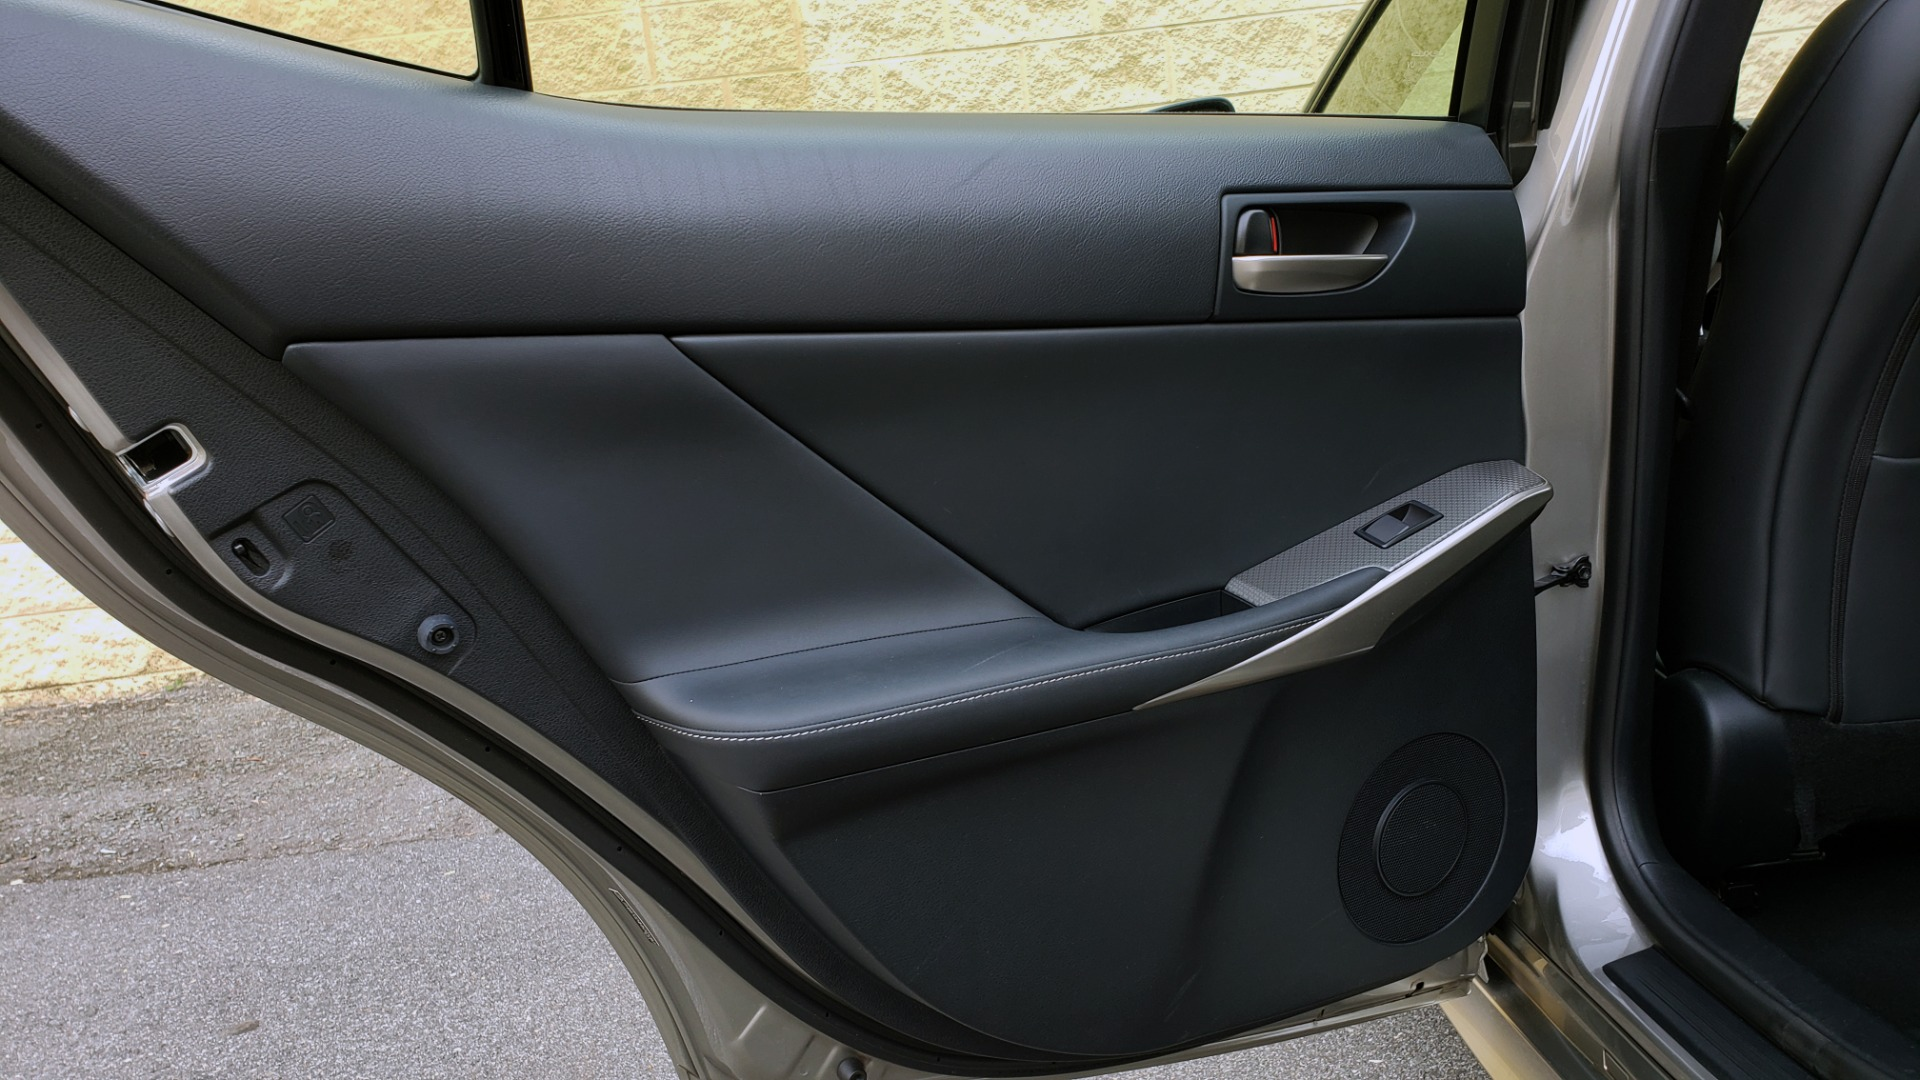 Used 2017 Lexus IS 200 TURBO F-SPORT / BSM / SUNROOF / VENT SEATS / REARVIEW for sale Sold at Formula Imports in Charlotte NC 28227 51